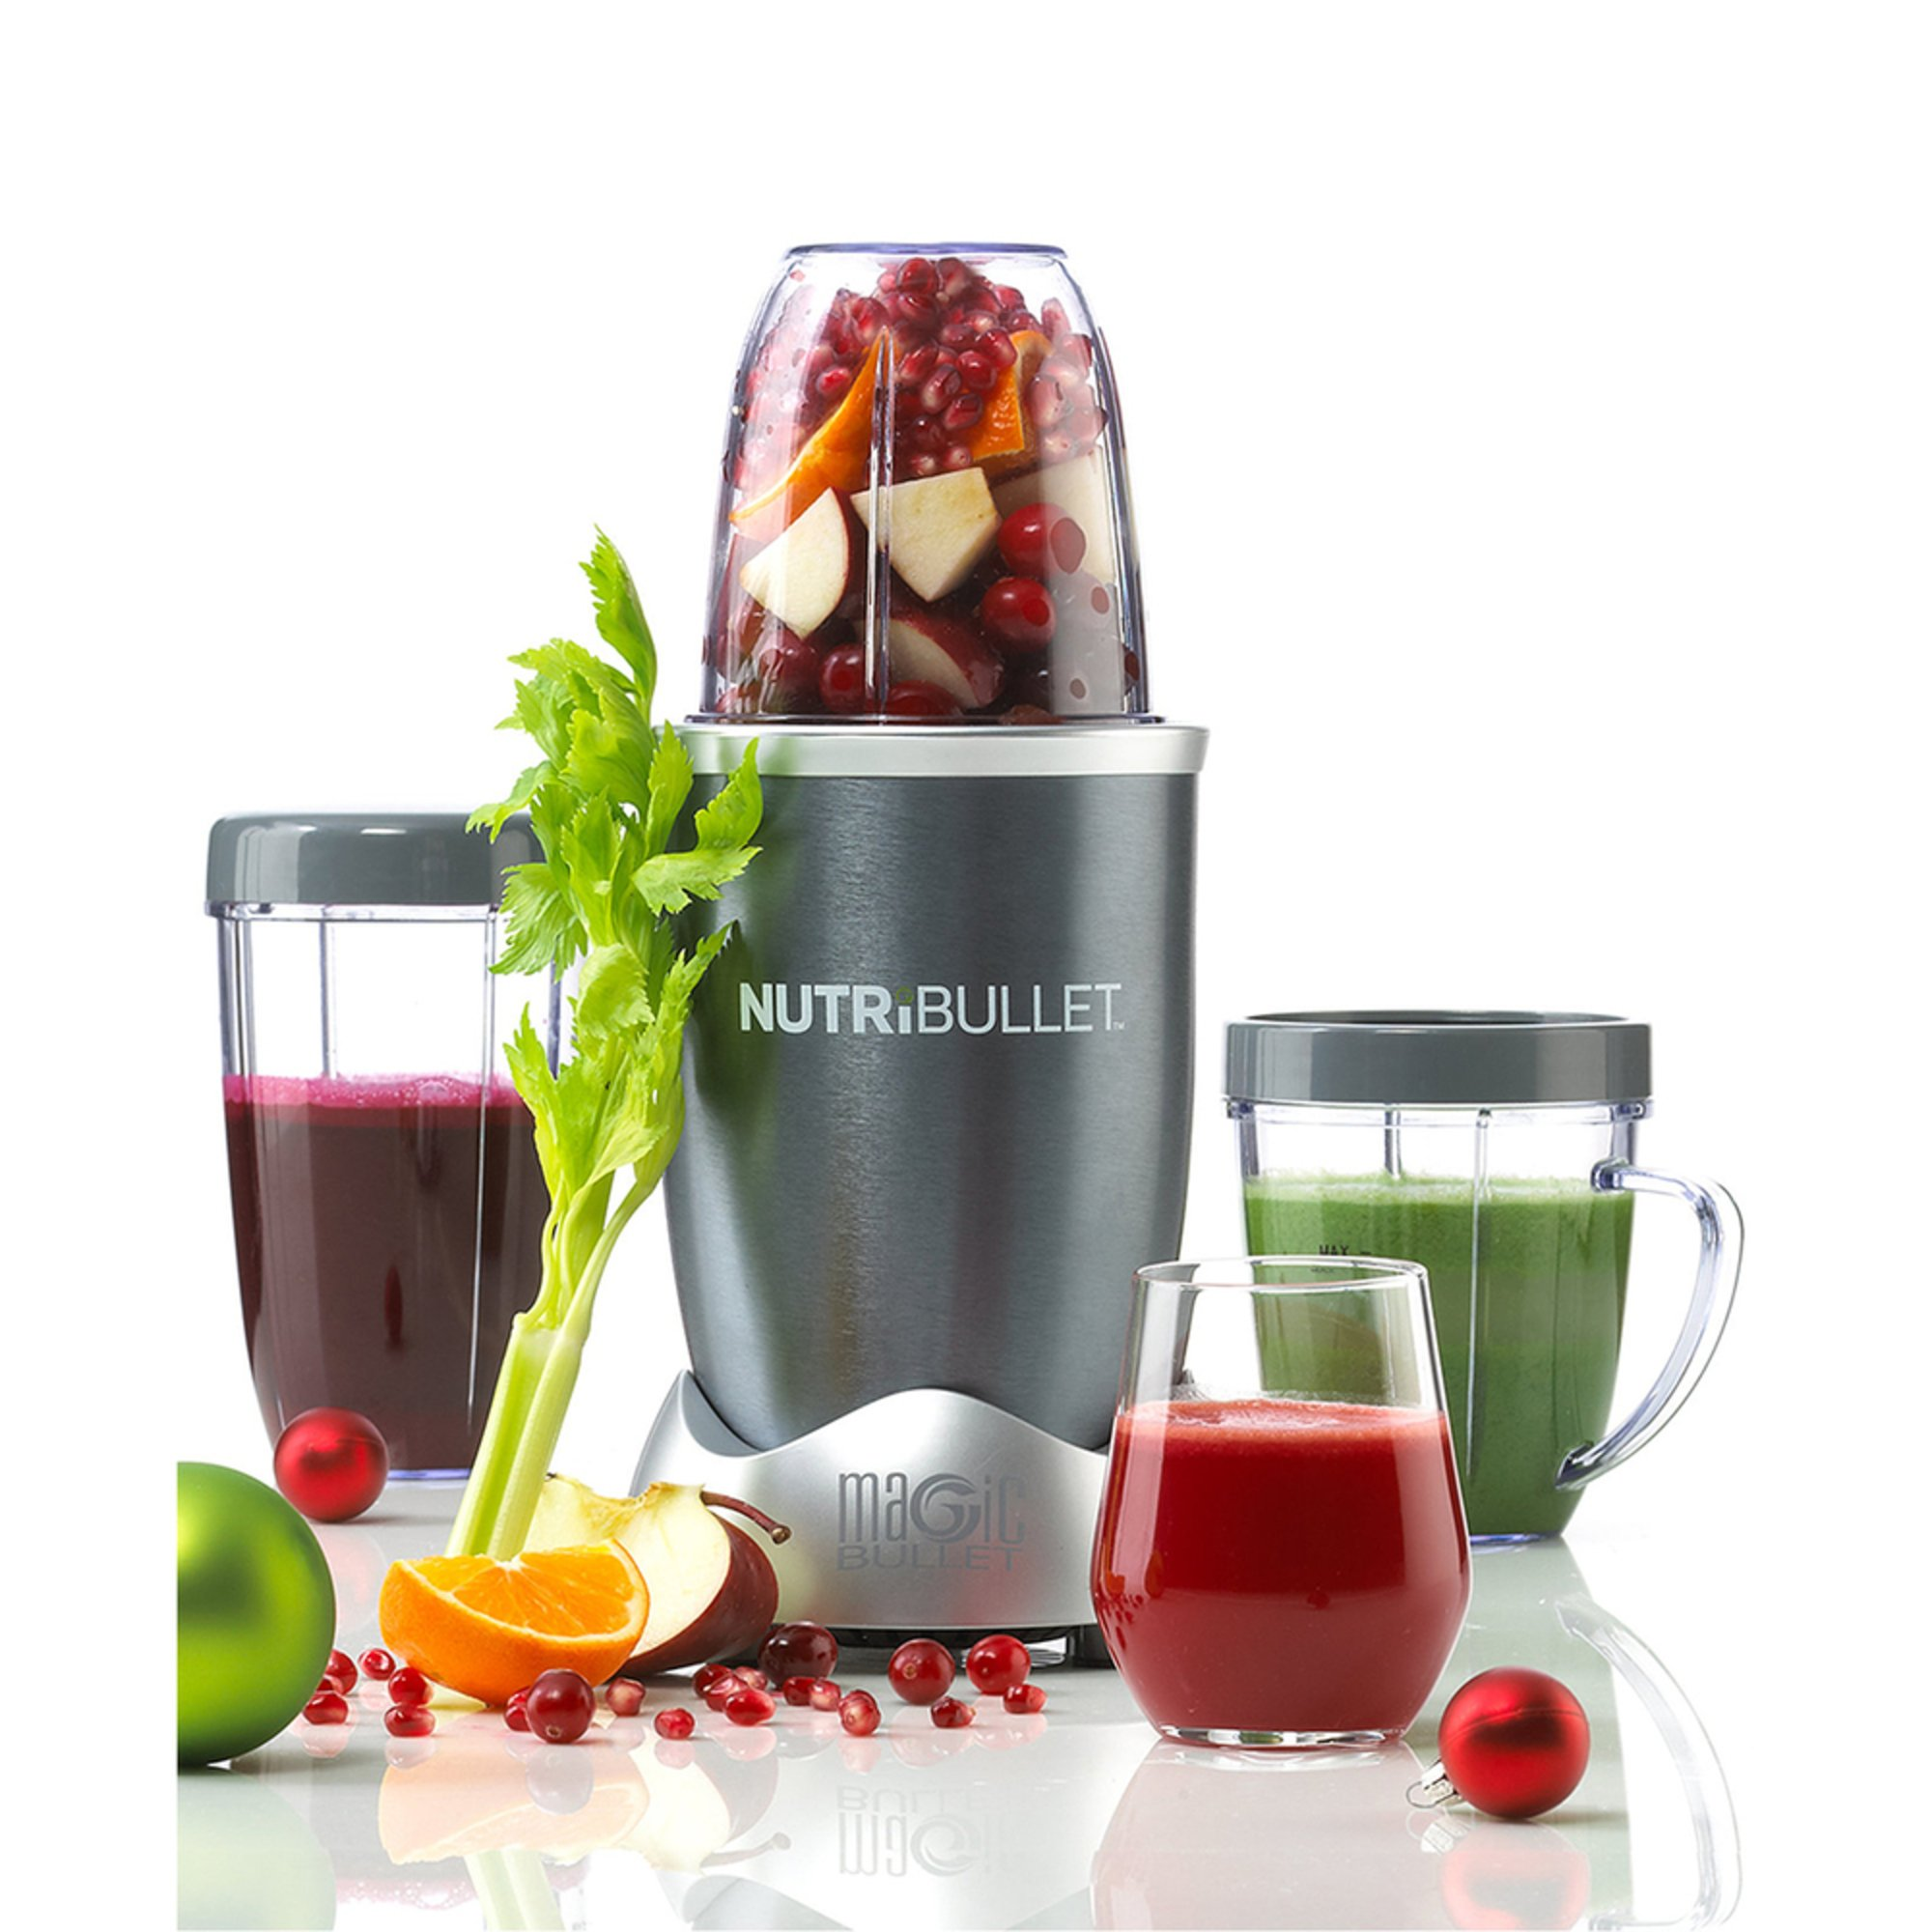 Nutribullet 600 Watt Blender System By Magic Bullet